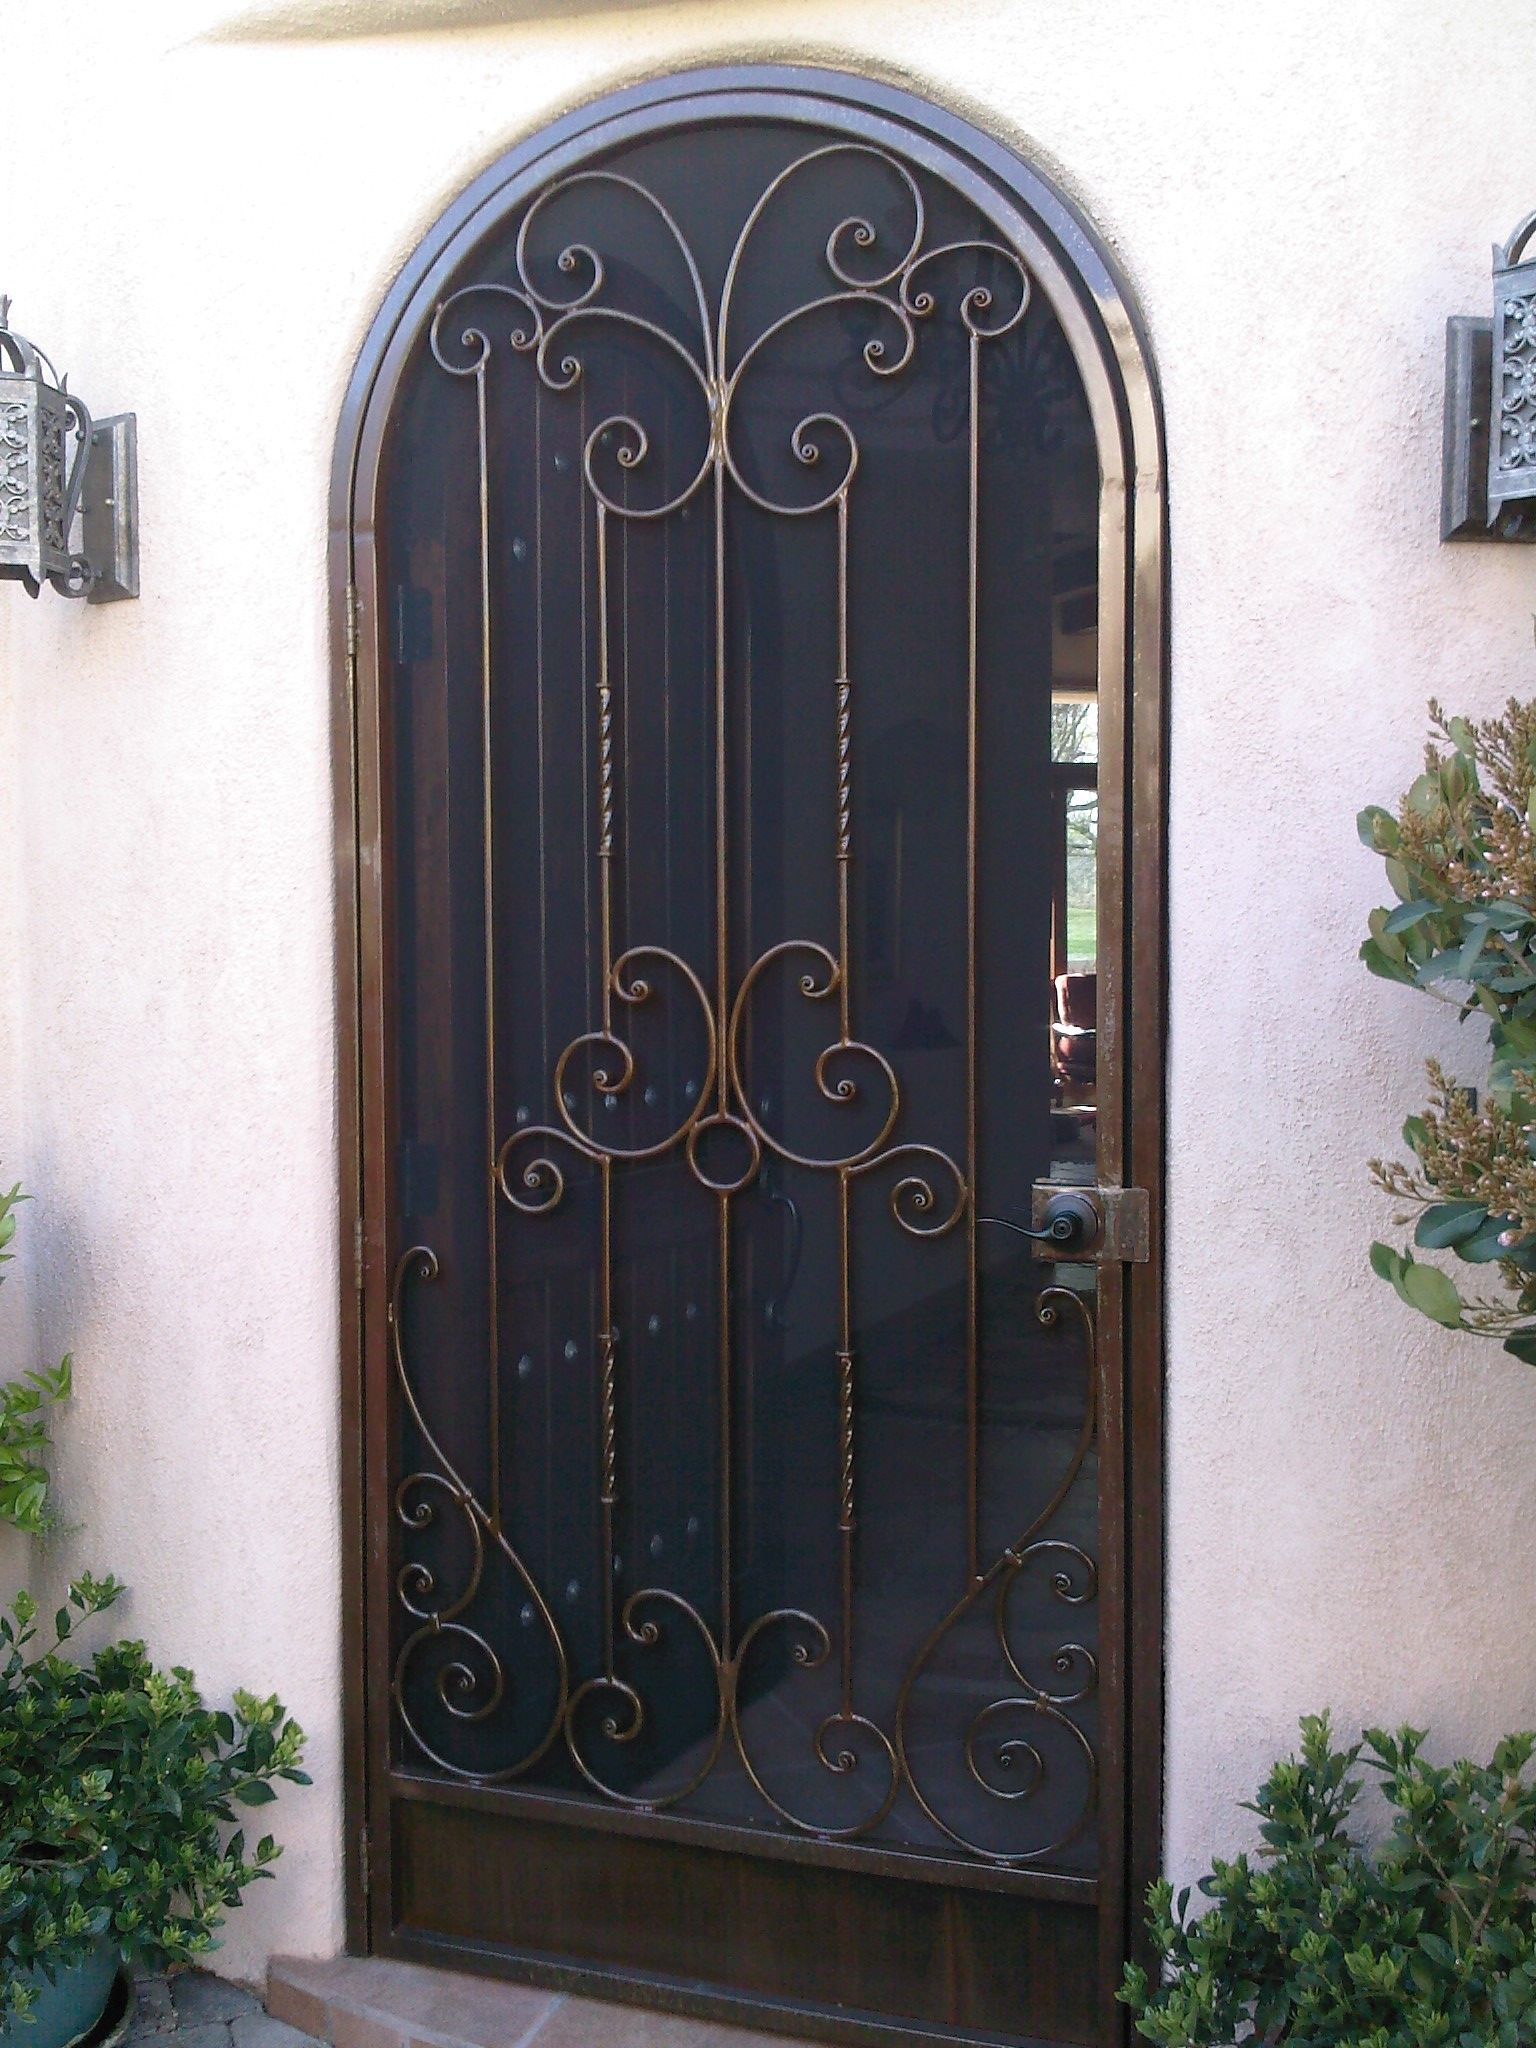 Pin De Crest Pointe Cottage En Doors I Adore Iron Doors